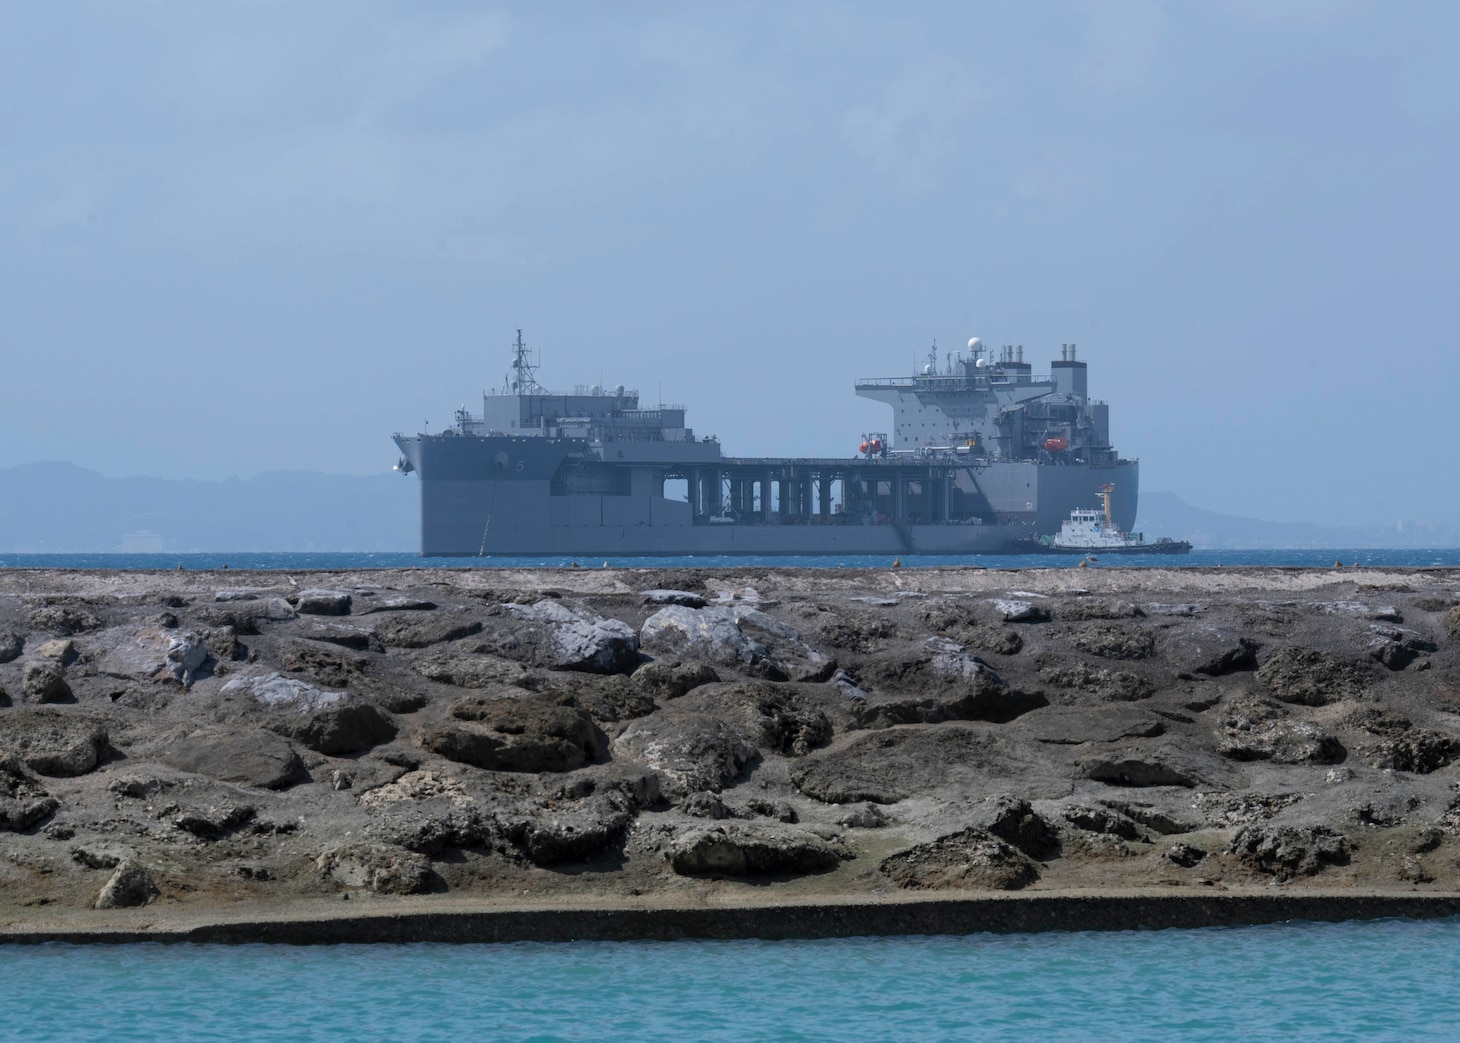 WHITE BEACH, Japan (Oct. 6, 2021) Lewis B. Puller-class expeditionary staging base USS Miguel Keith (ESB 5) anchors off Commander, Fleet Activities Okinawa White Beach Naval Facility Oct. 6, 2021. Miguel Keith, assigned to Amphibious Squadron Eleven, is operating in the U.S. 7th Fleet area of responsibility to enhance interoperability with allies and partners and serve as a ready response force to defend peace and stability in the Indo-Pacific region. (U.S. Navy photo by Mass Communication Specialist 2nd Class Jessica Ann Hattell)